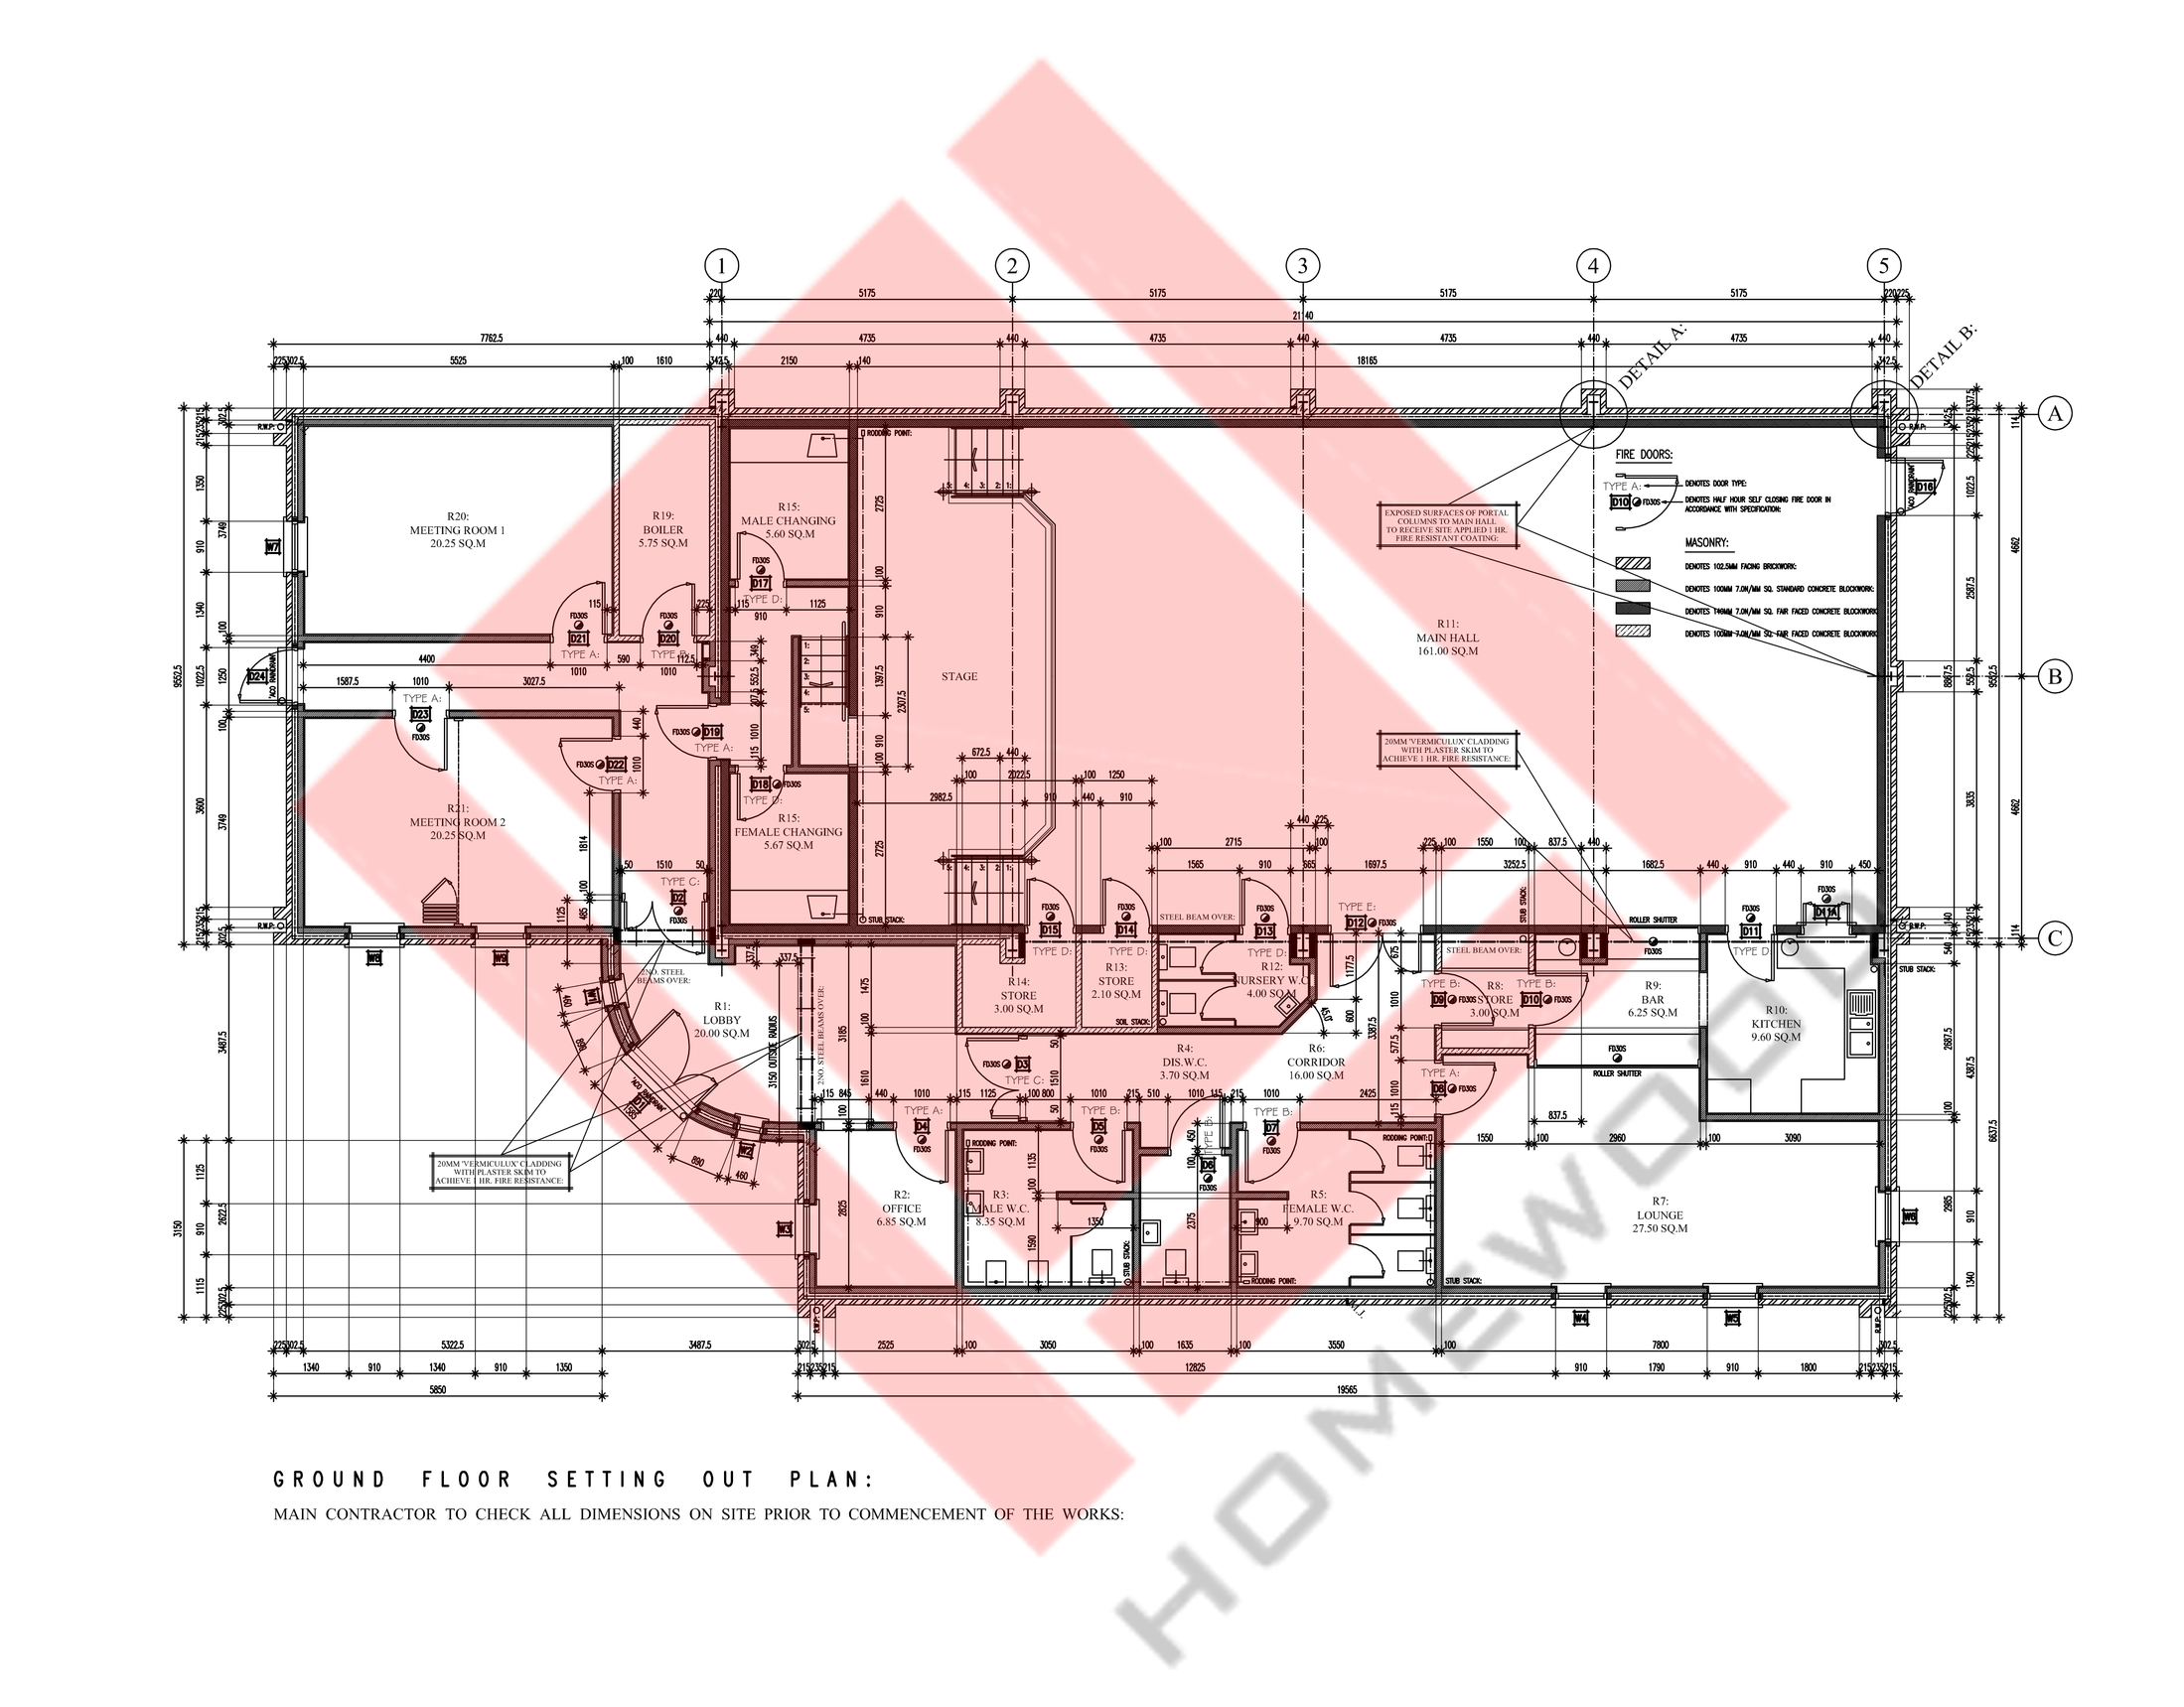 03 Floor Plan.Image.Marked_1.png